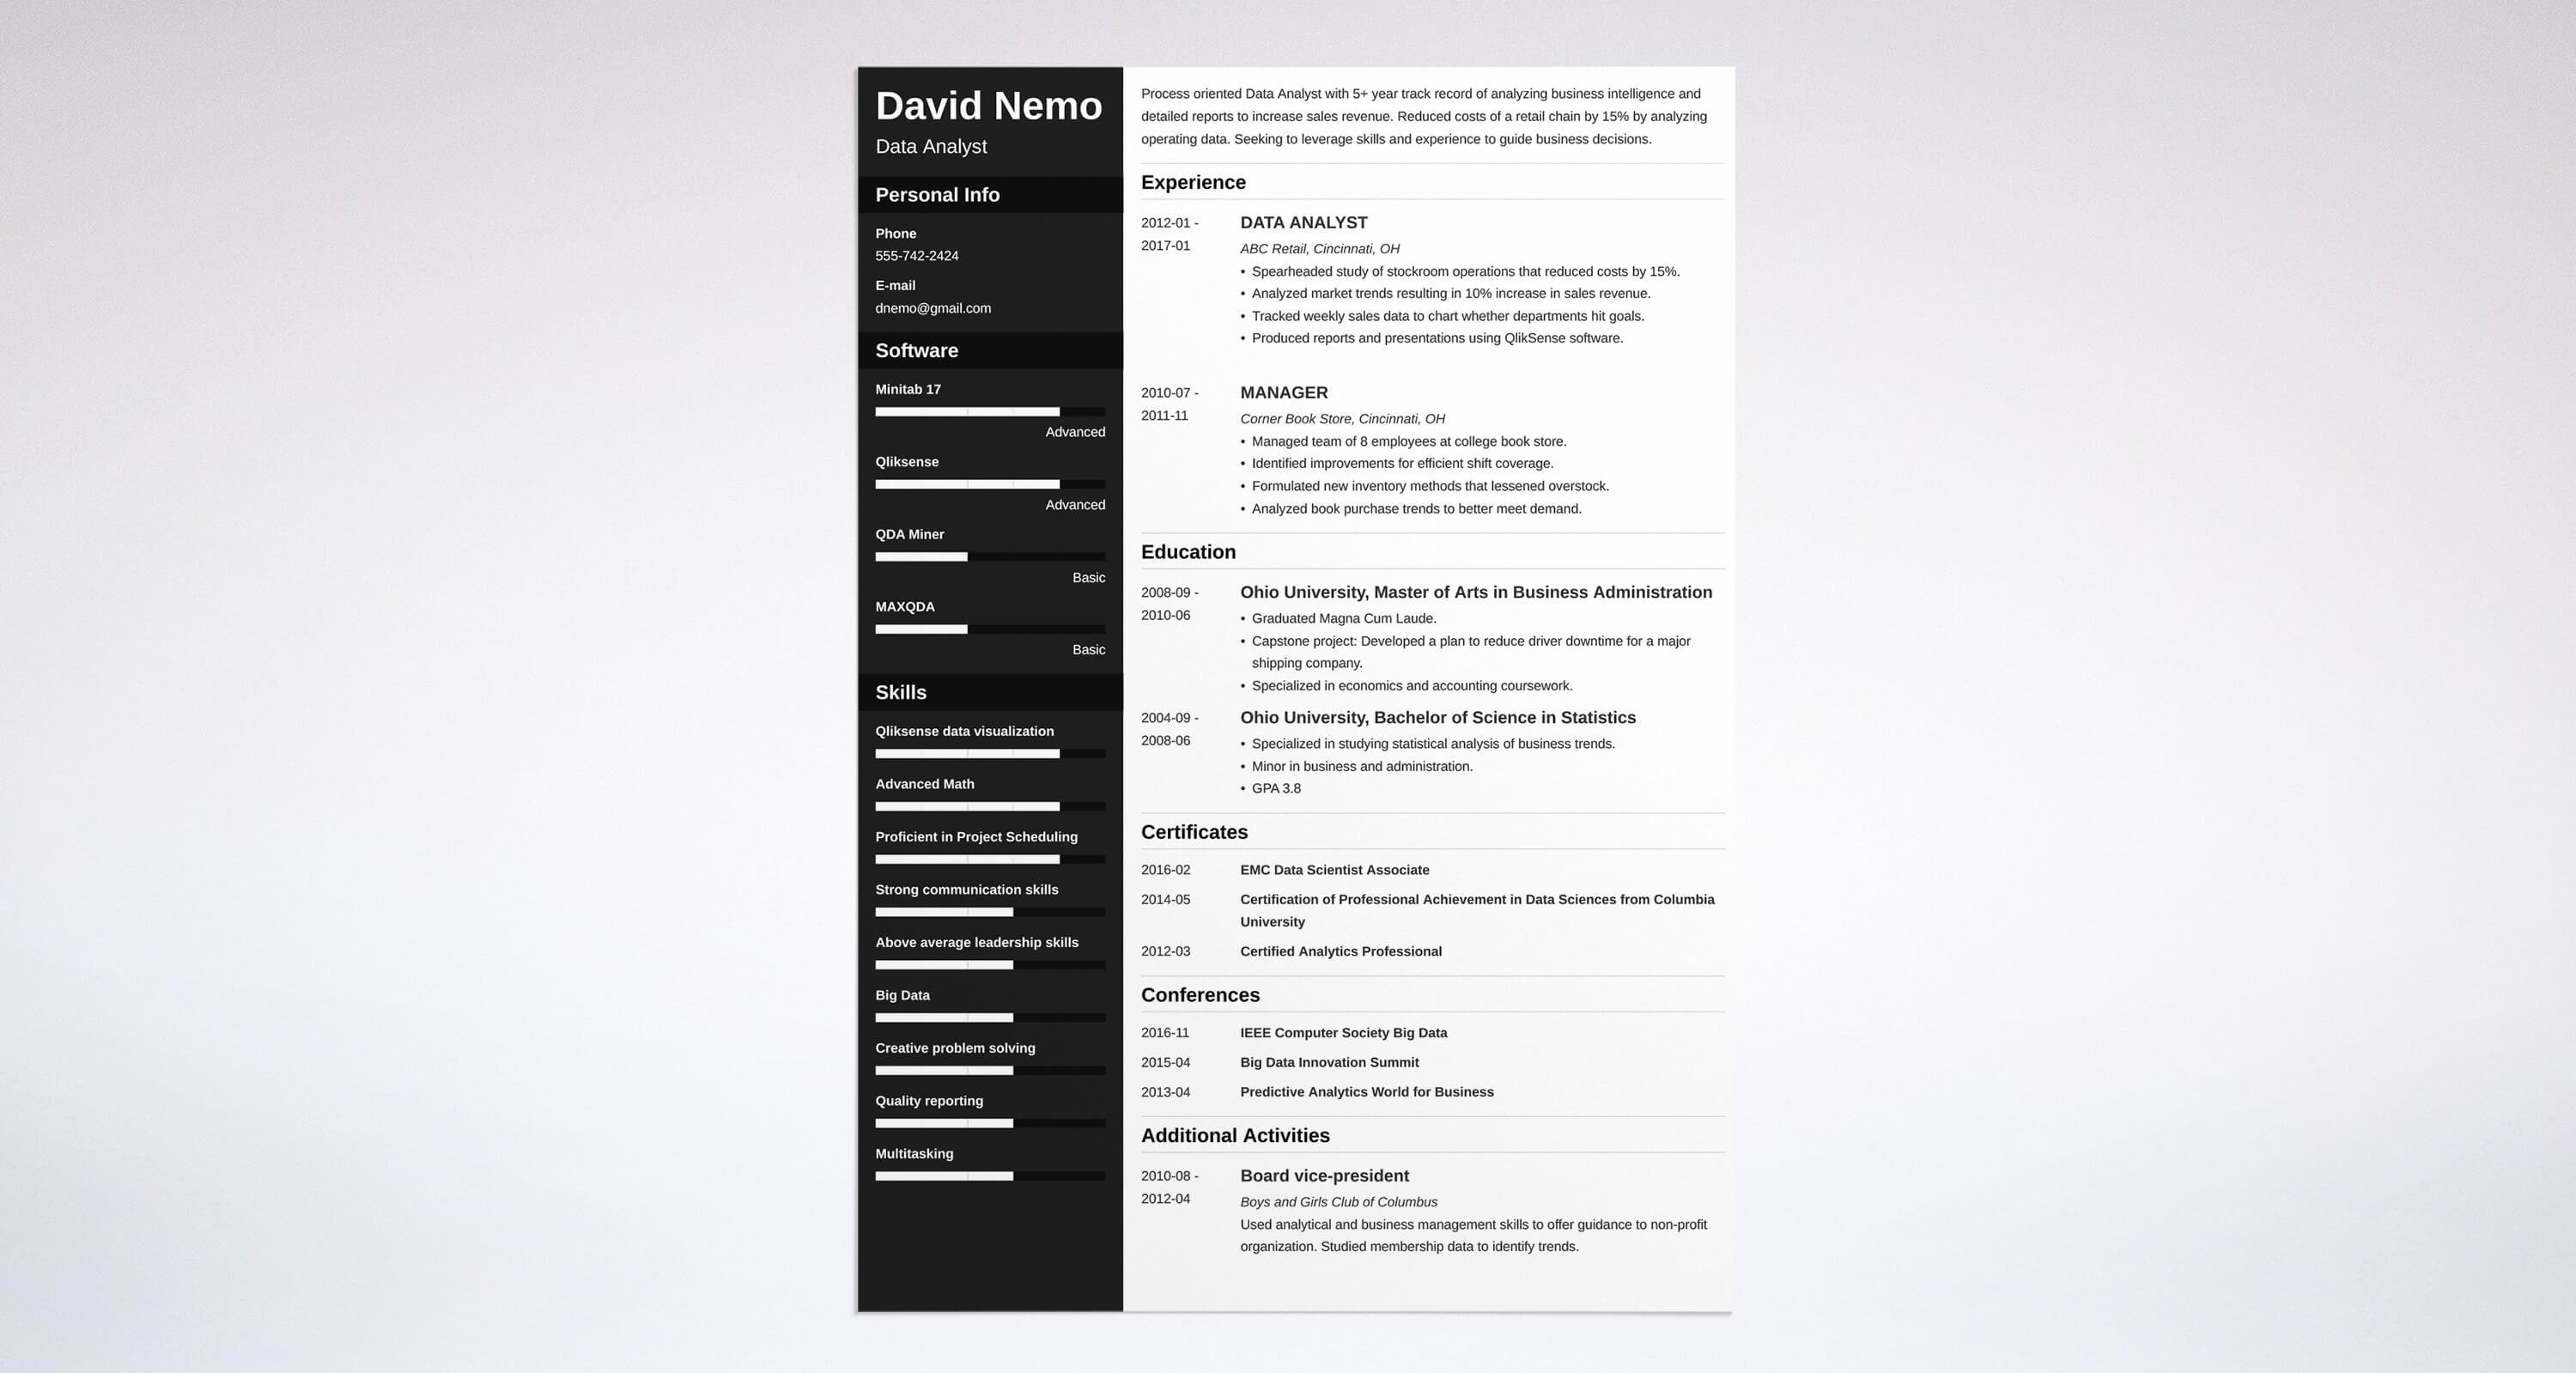 Data Analyst Resume Template Beautiful Data Analyst Resume Sample & Plete Guide [ 20 Examples]